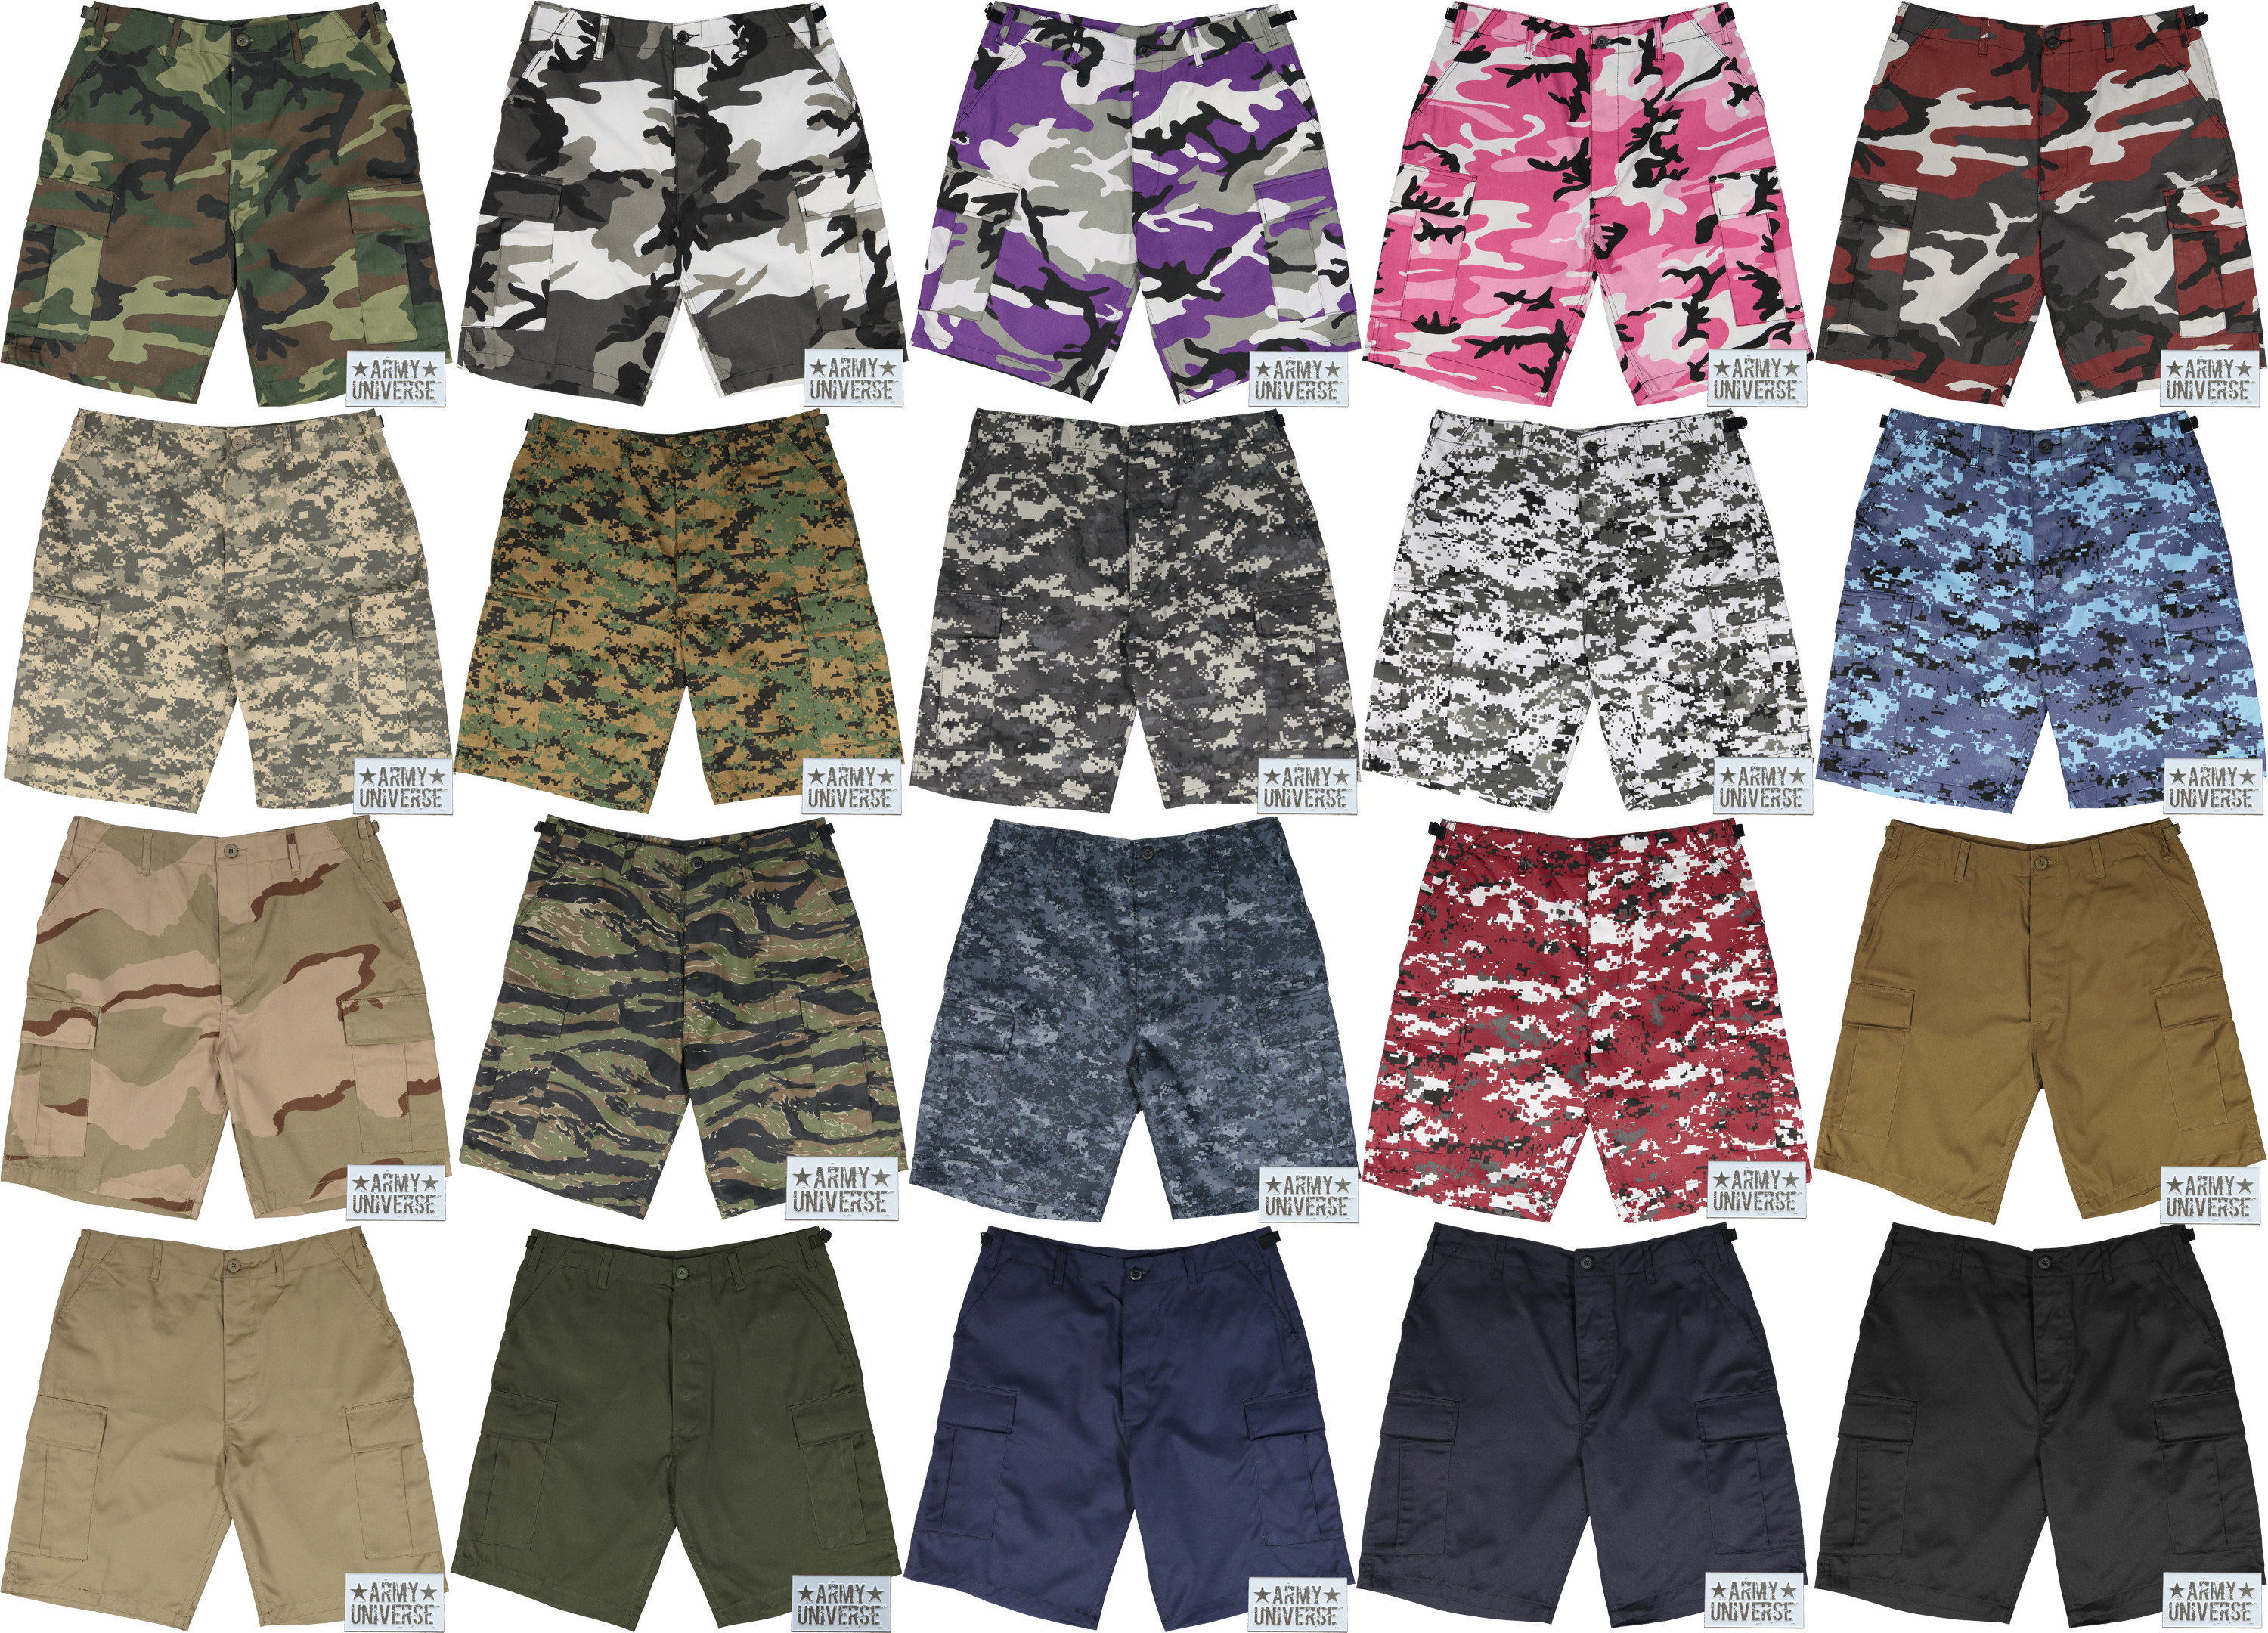 More Views. Camouflage Tactical 6 Pocket Cargo BDU Shorts w  ARMYUNIVERSE®  Pin b421c83b39d